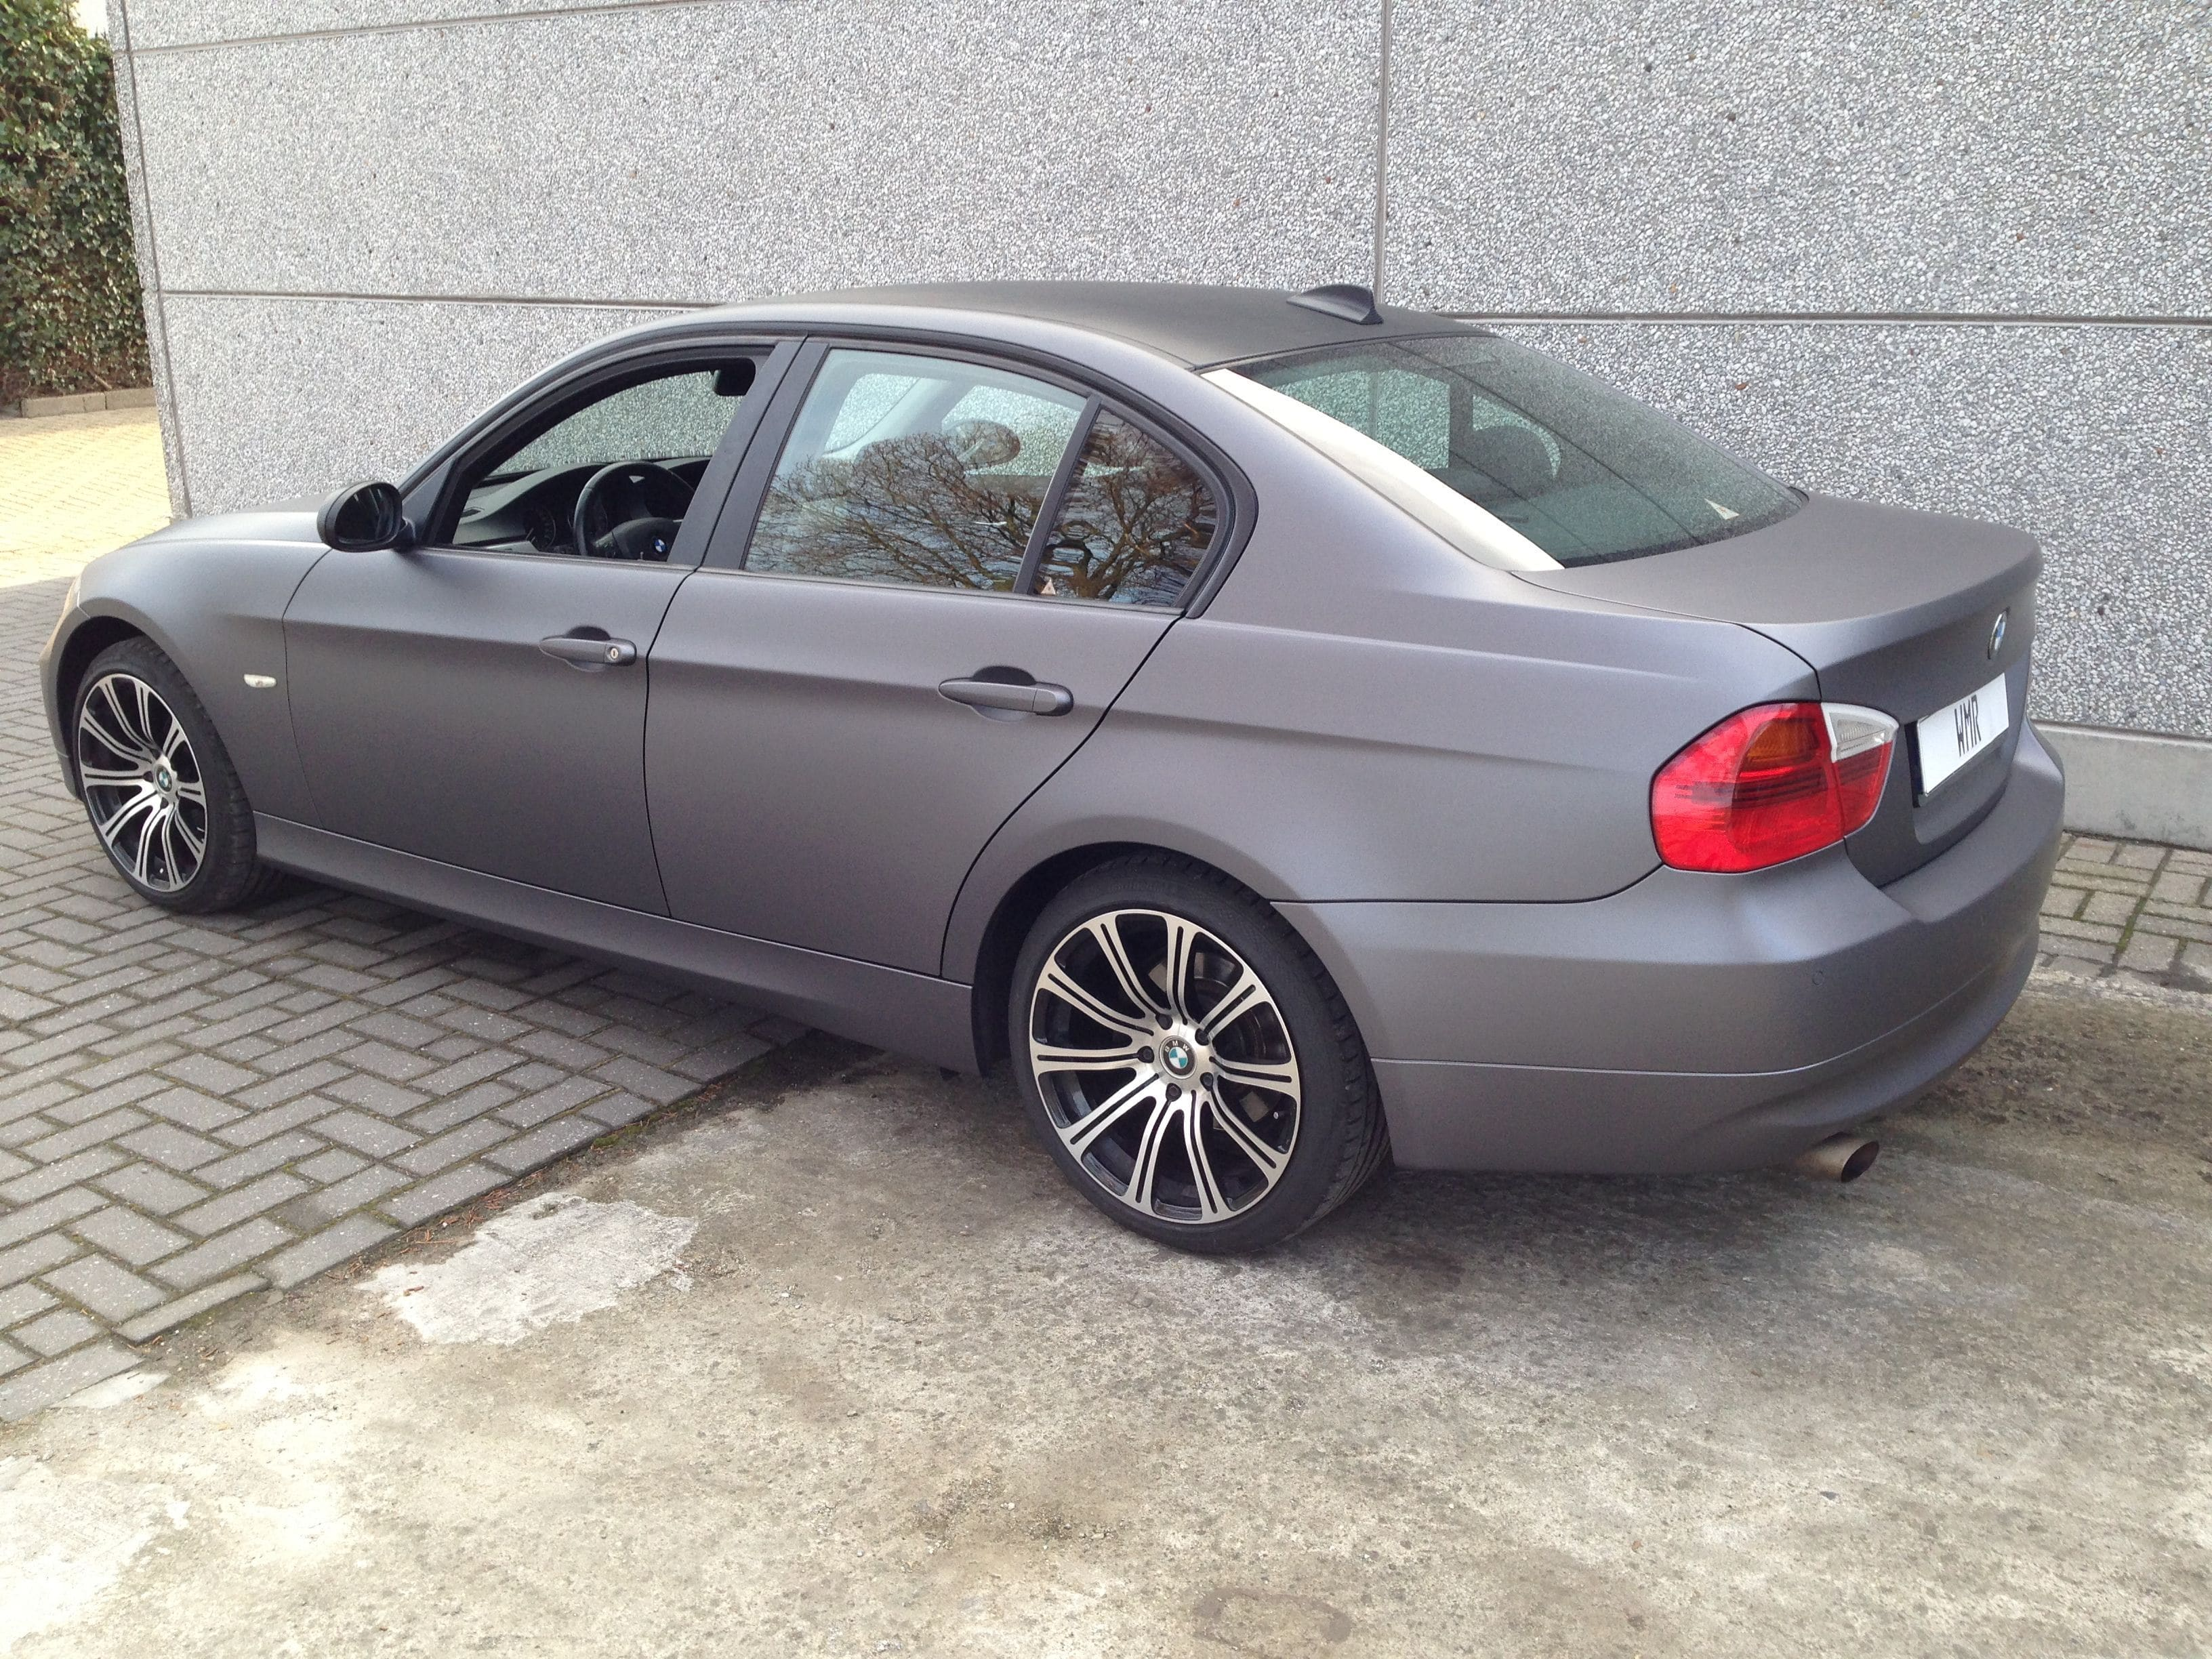 BMW E90 met Gunpowder Wrap, Carwrapping door Wrapmyride.nu Foto-nr:5388, ©2021